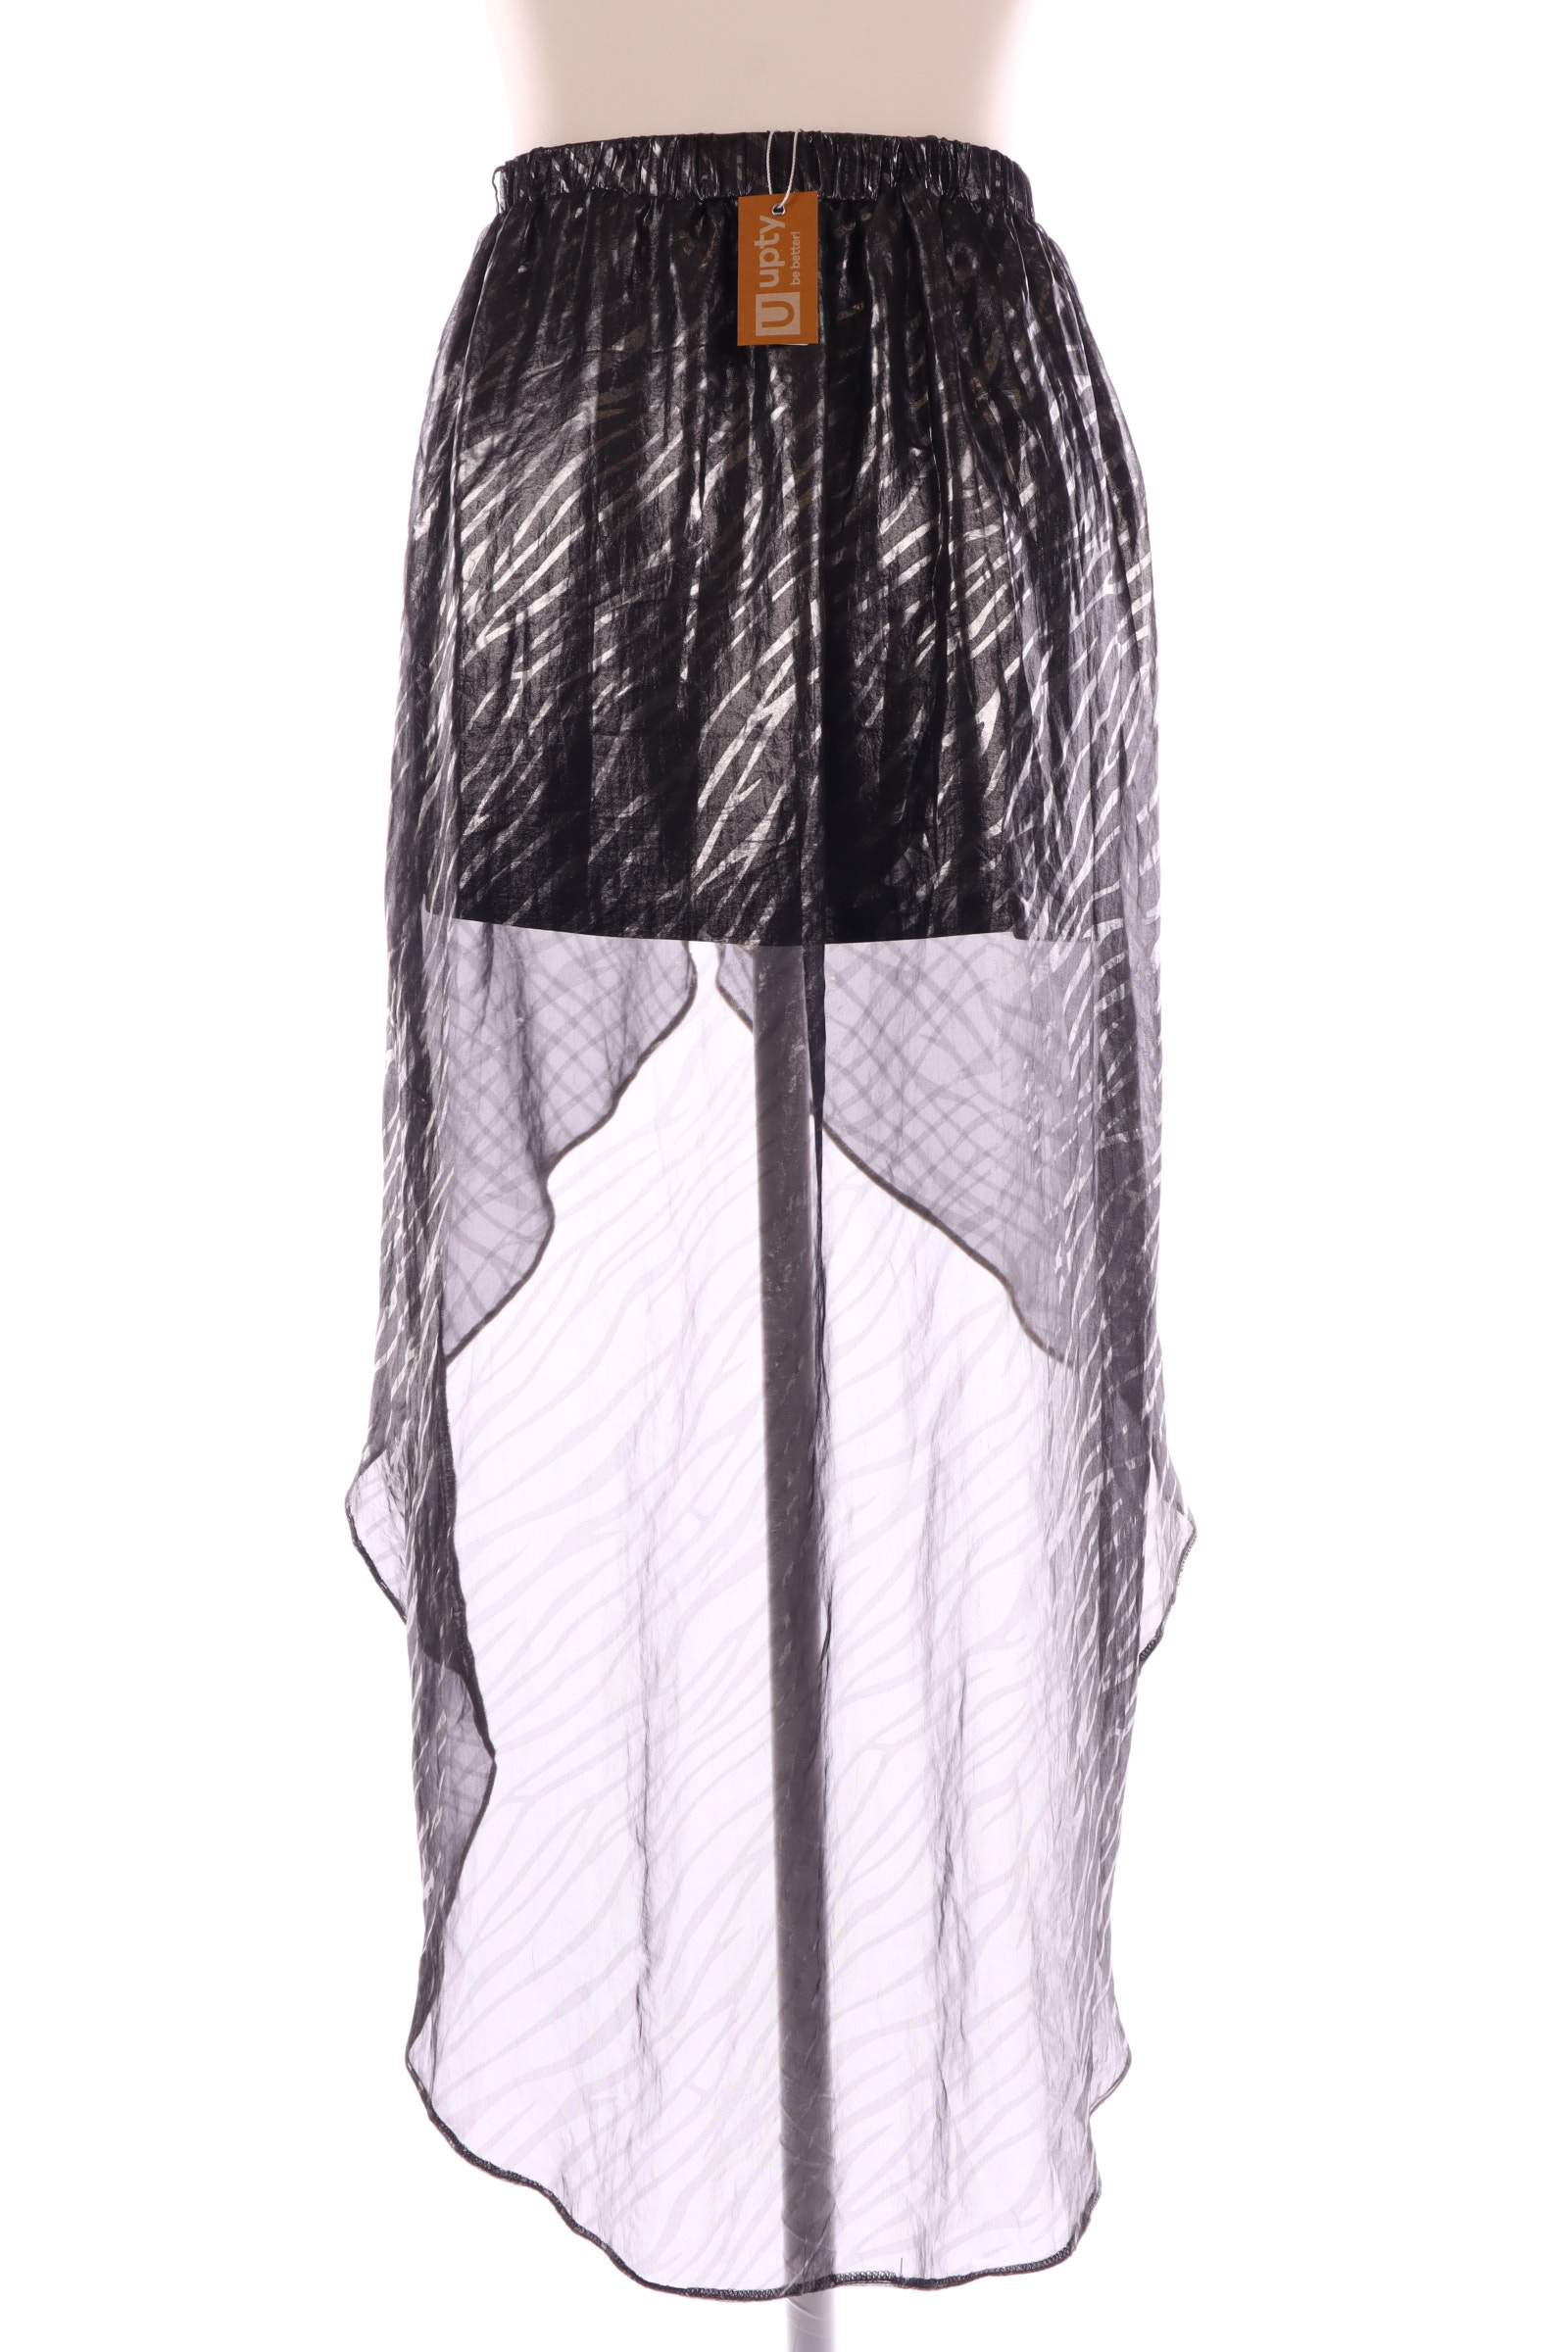 River Island Gray Skirt - upty.store